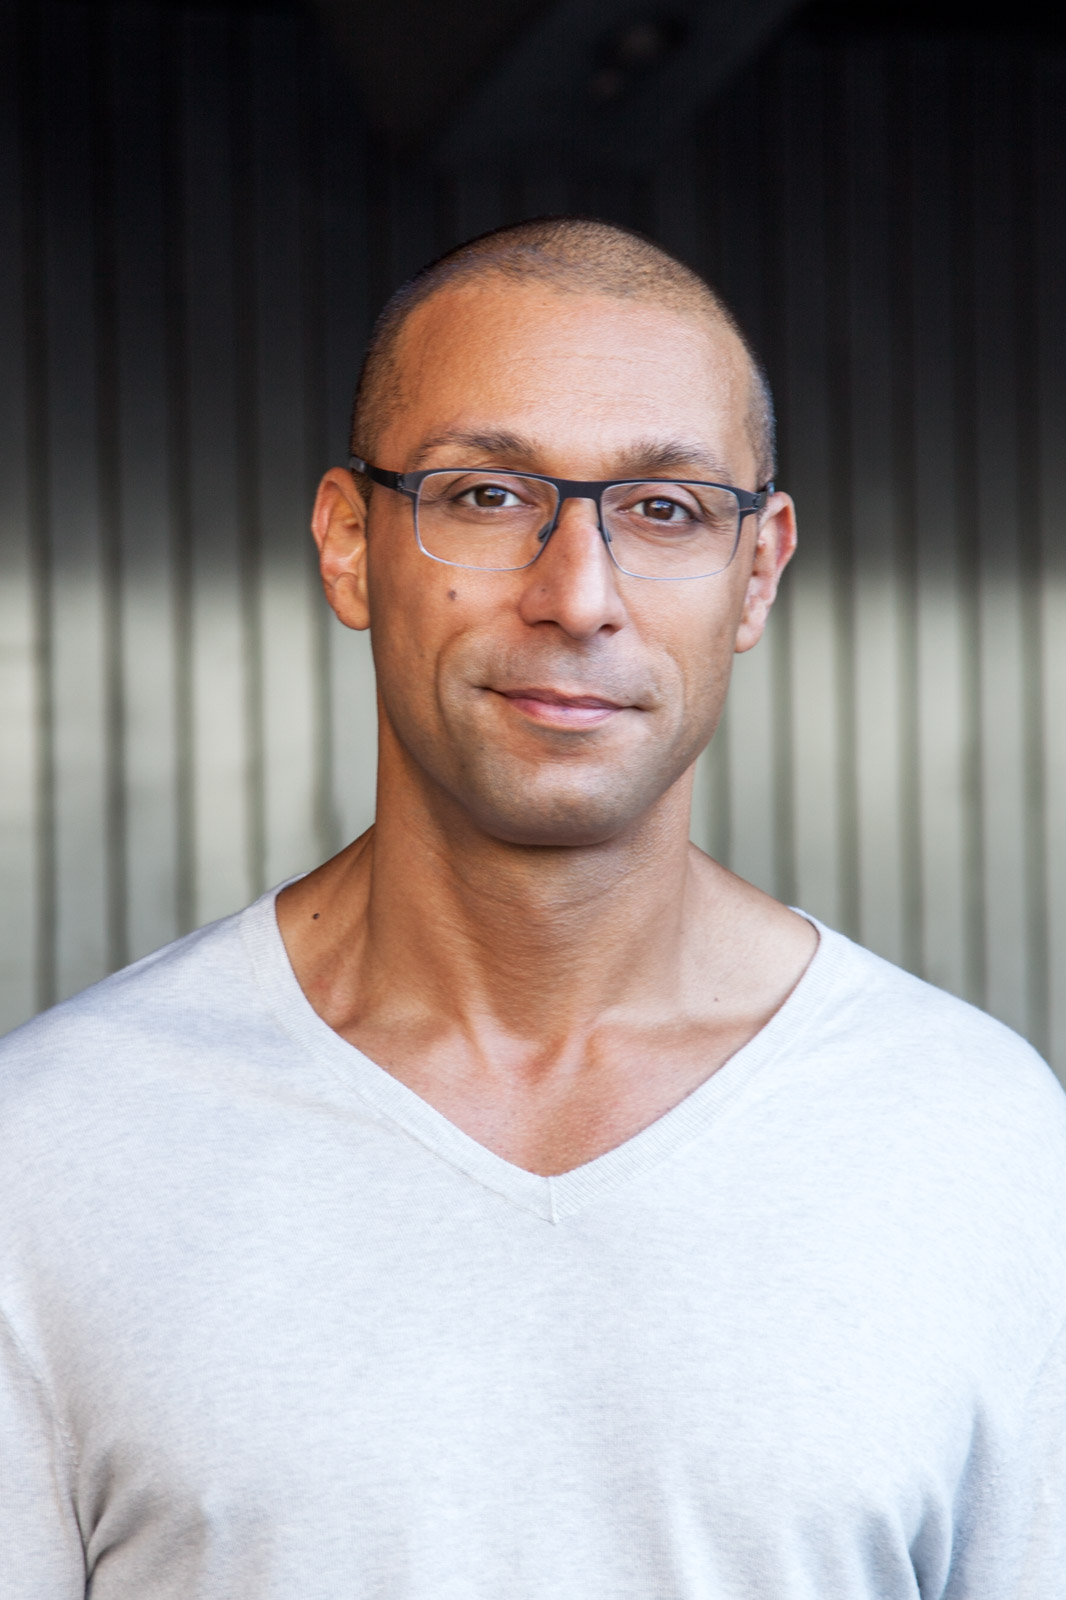 Personaltrainer in Berlin Alain Gussmann